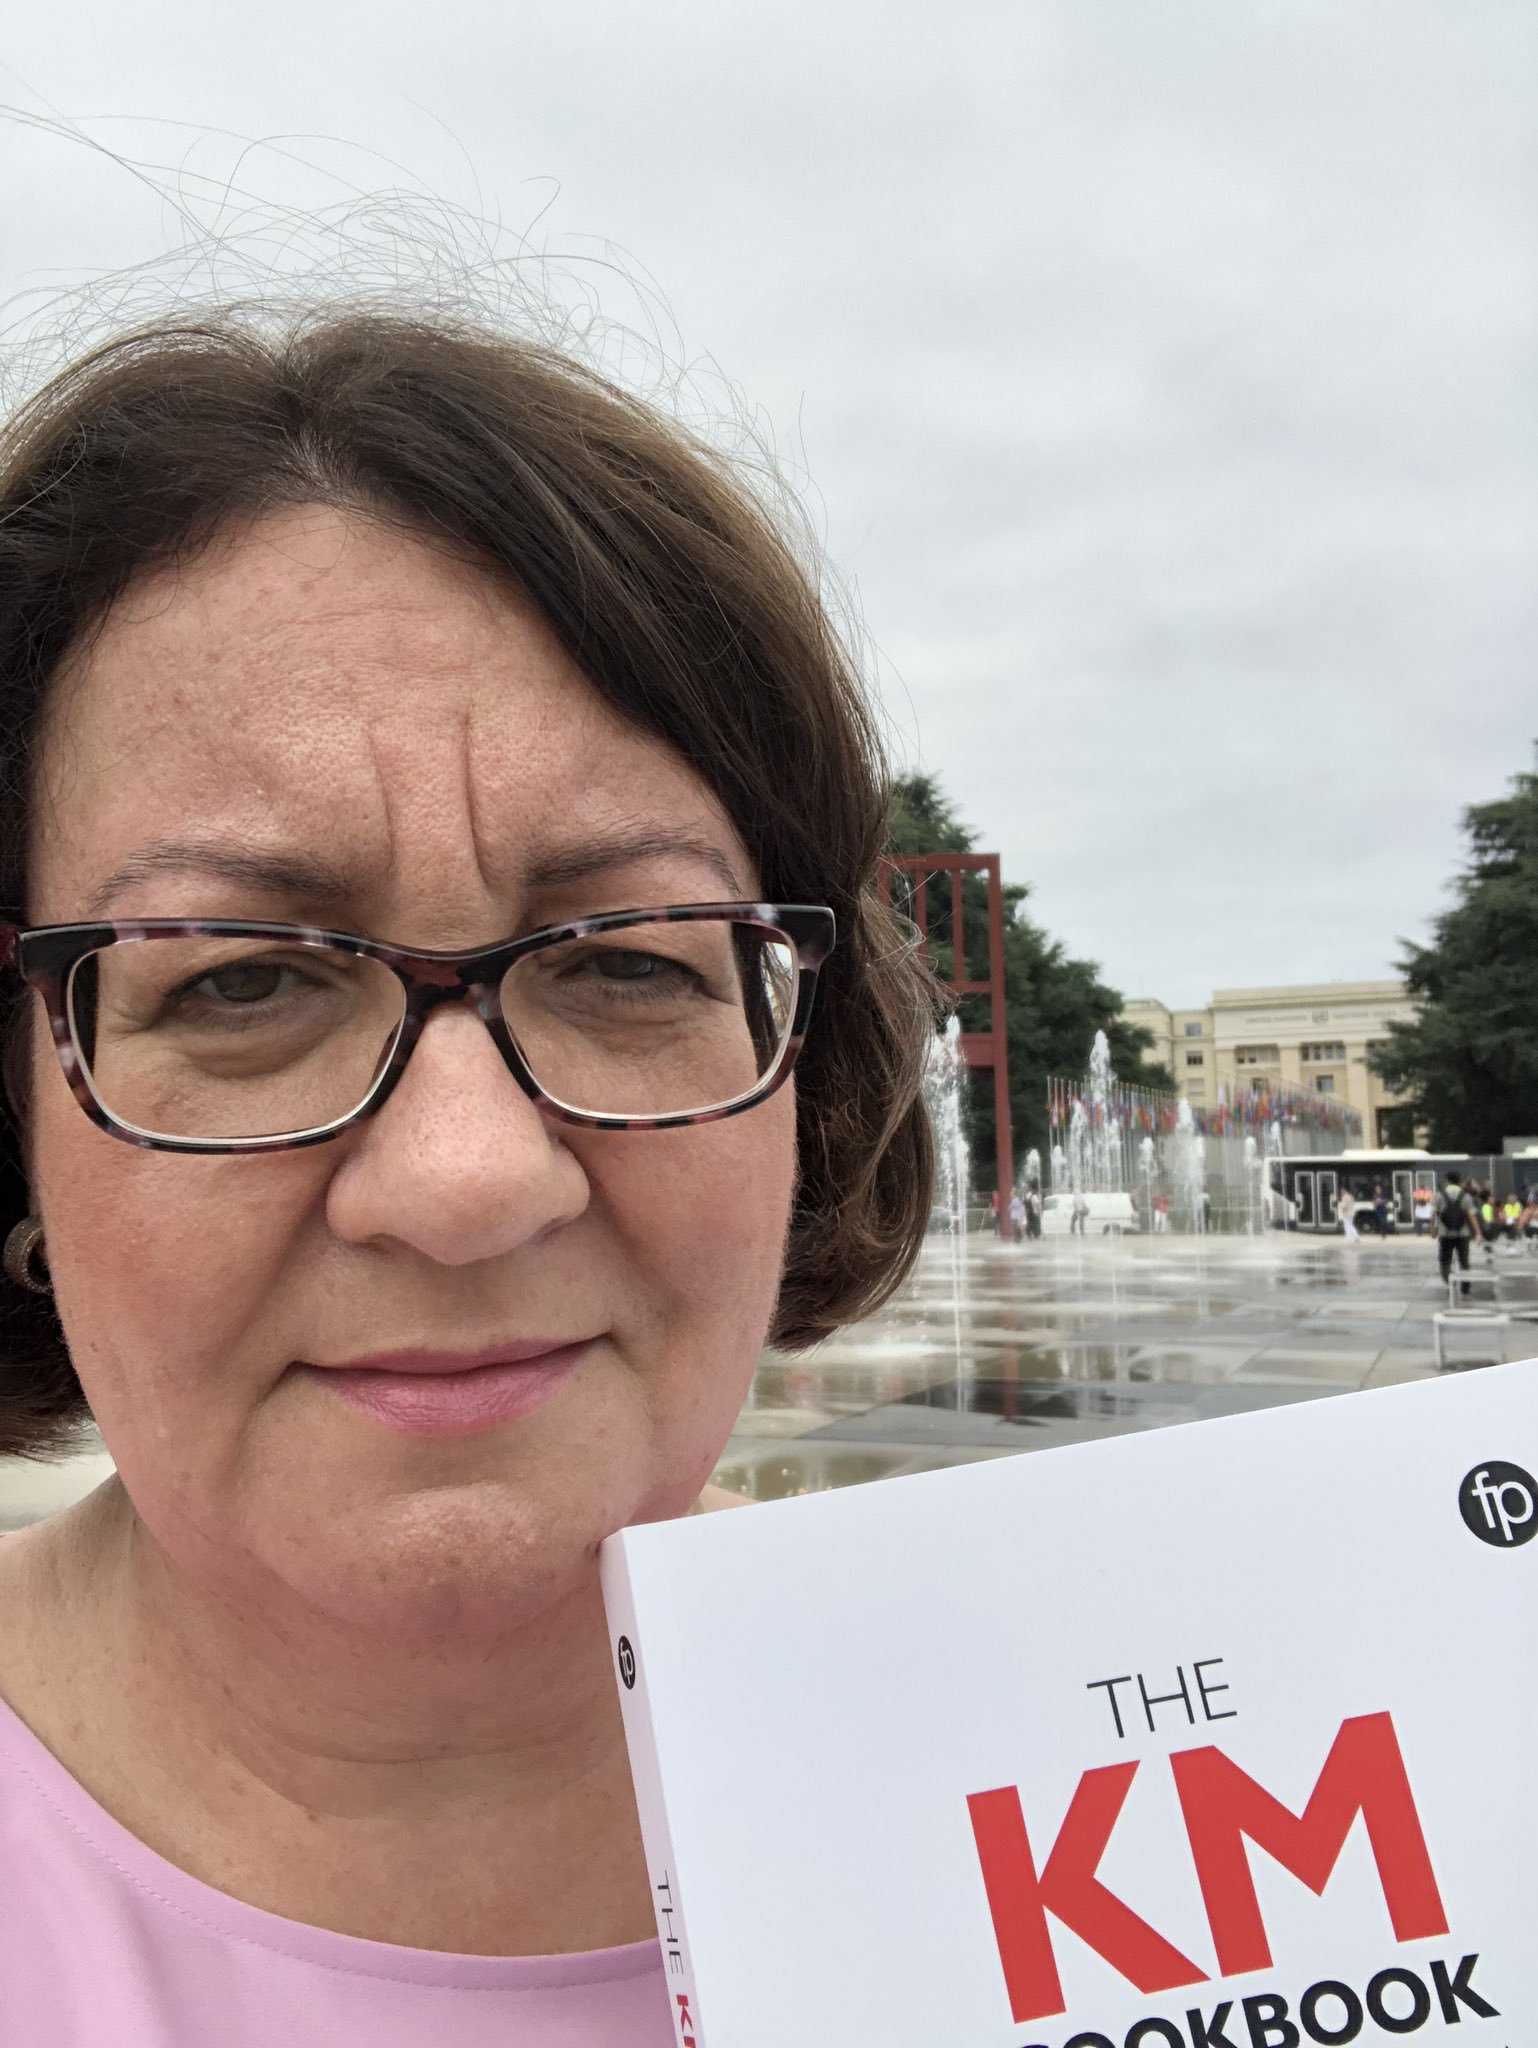 Denise Carter with her copy of the KM Cookbook in Geneva